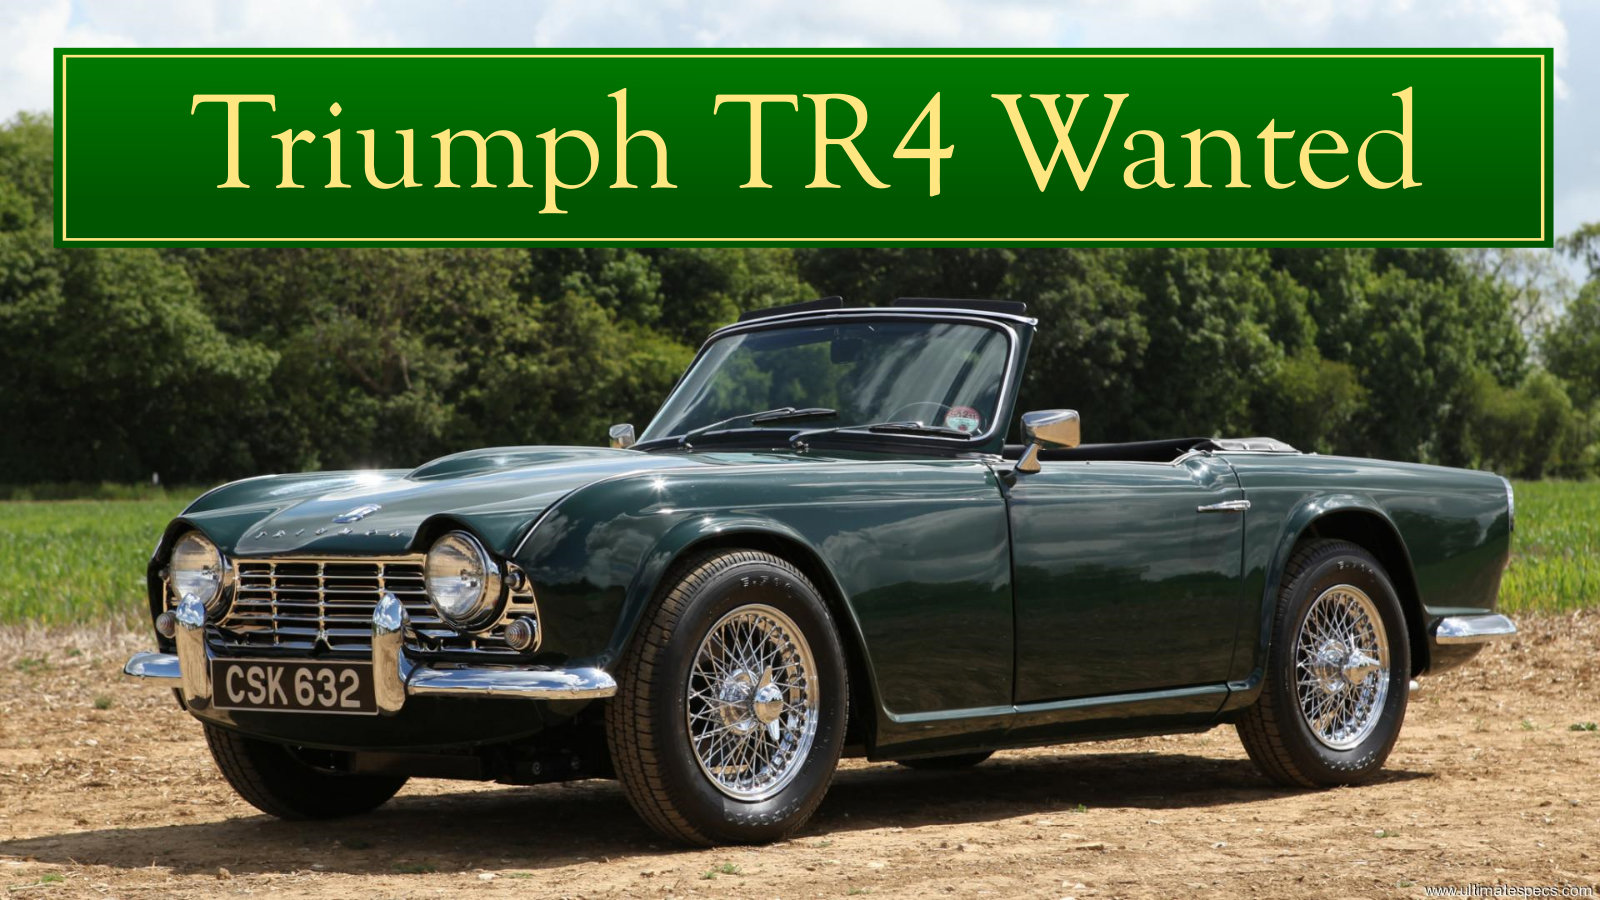 1956 TRIUMPH TR3 WANTED, CLASSIC CARS WANTED, QUICK PAYMENT Wanted (picture 3 of 6)